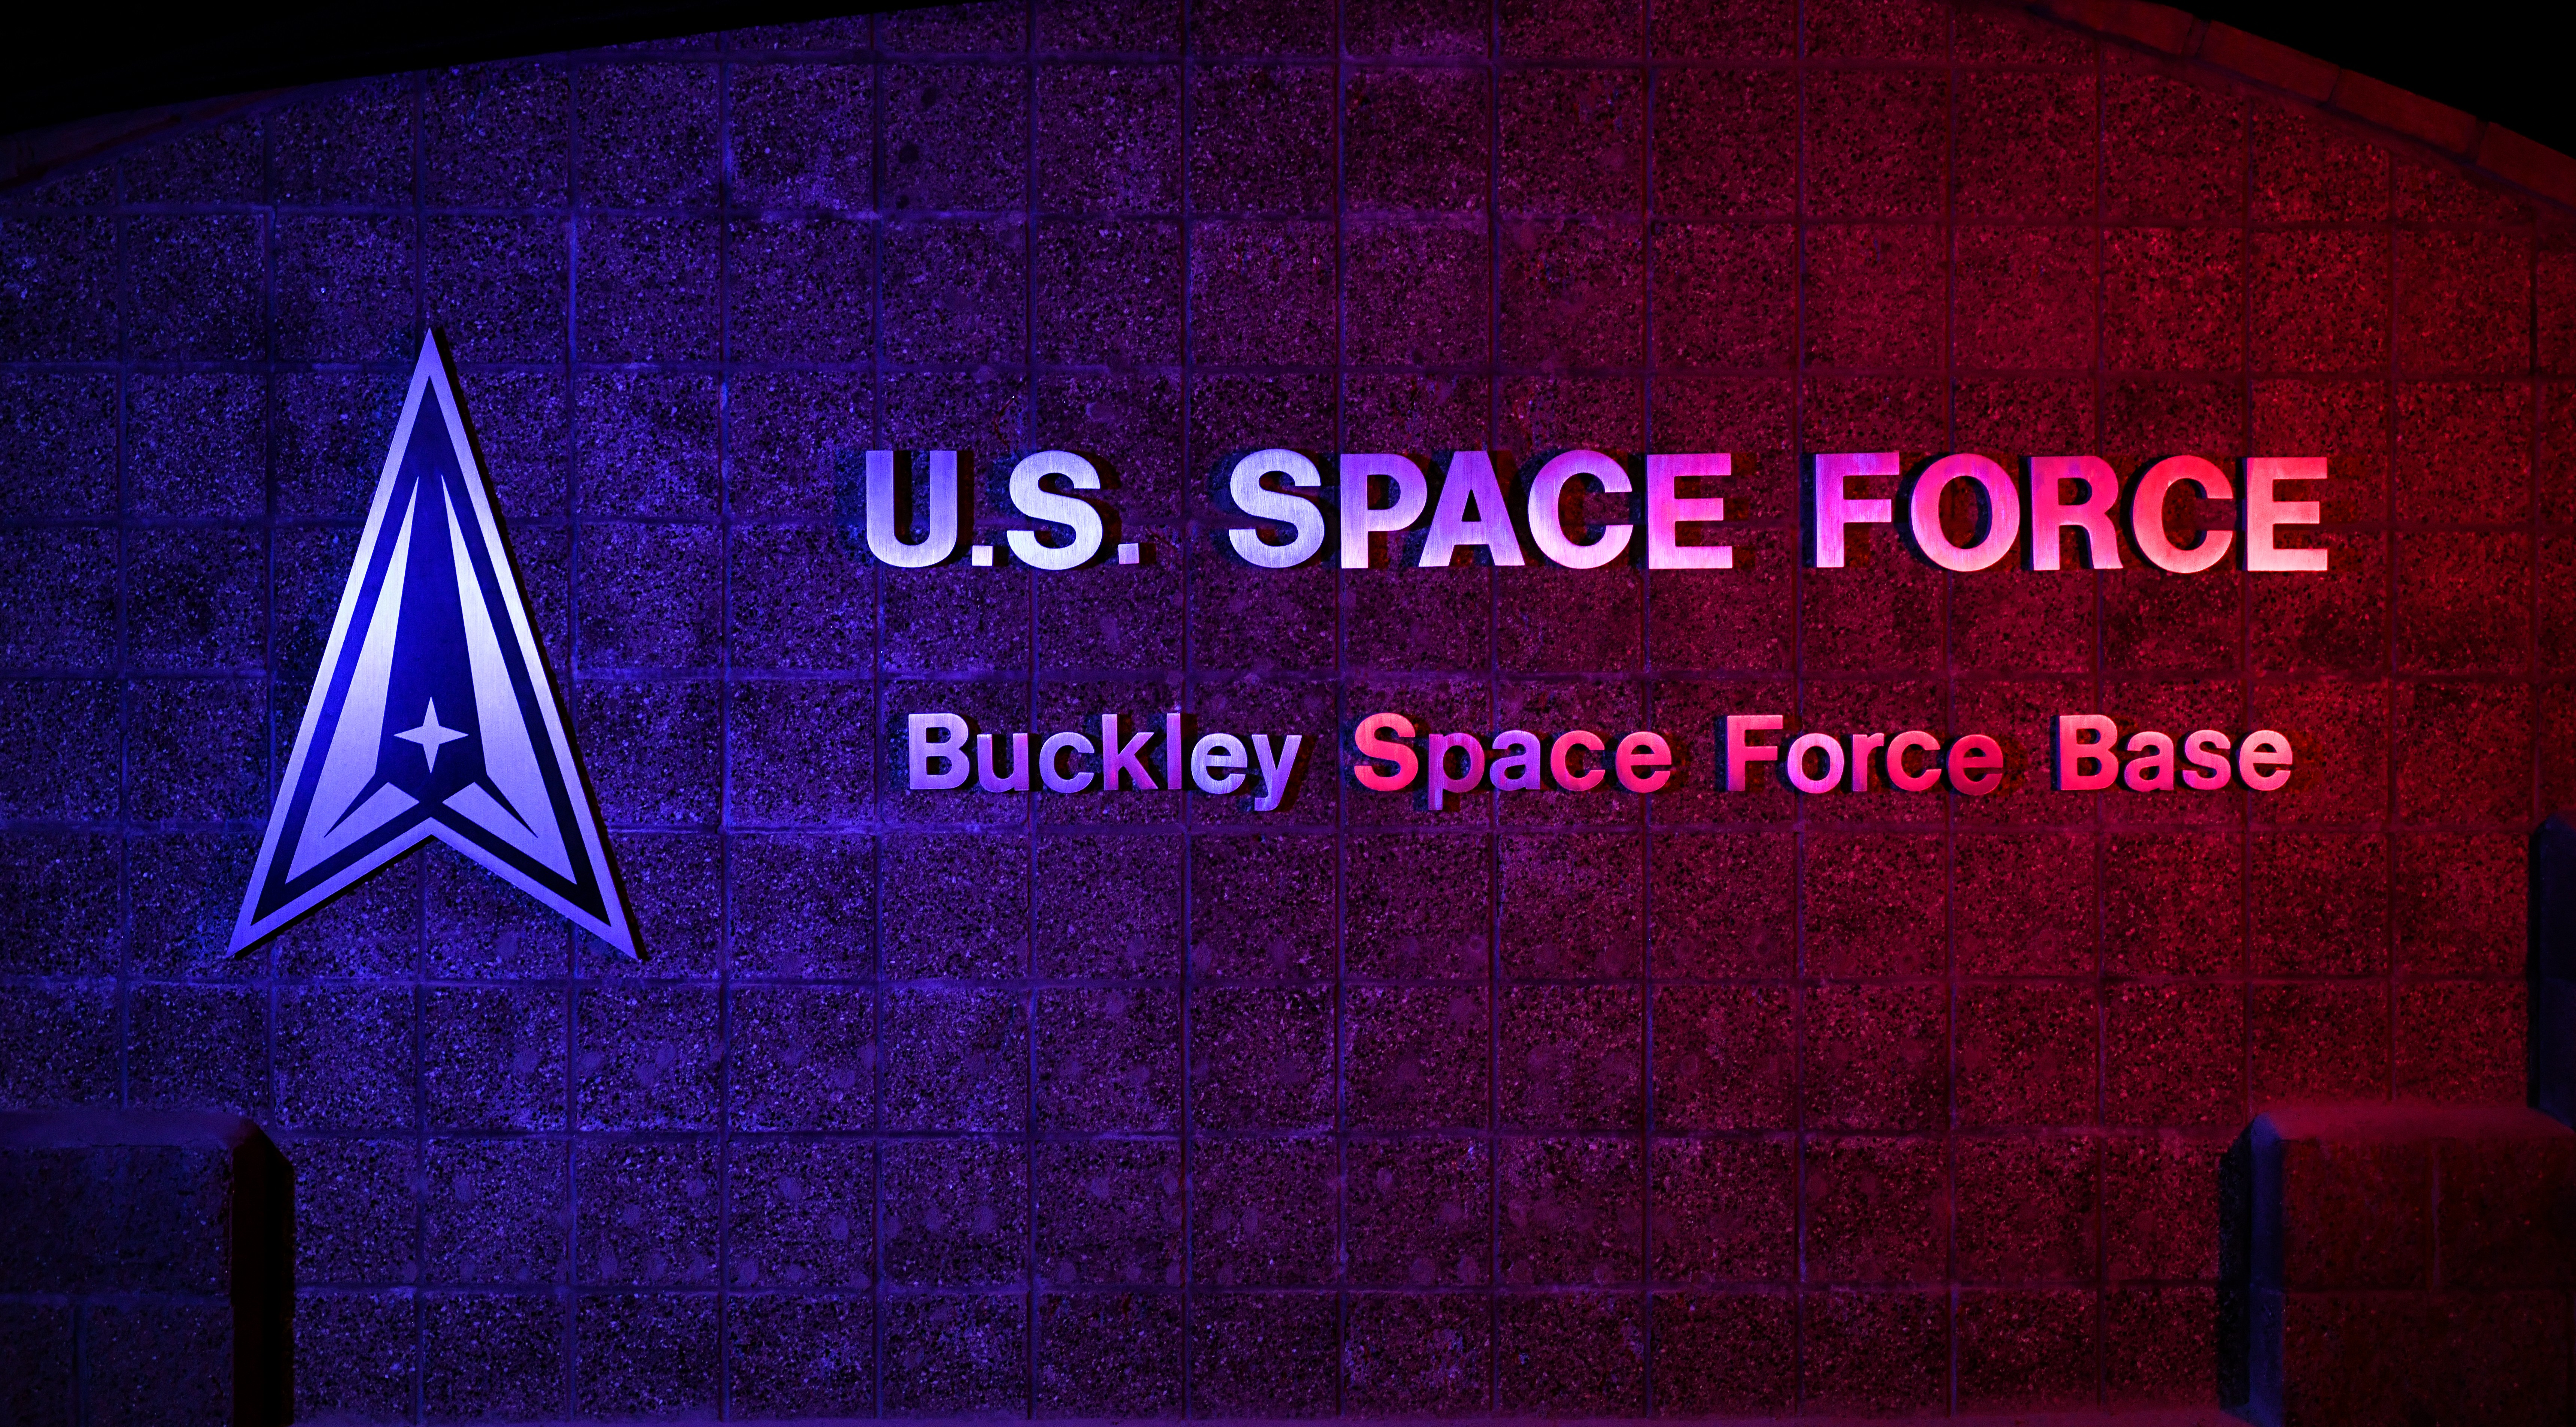 Buckley receives new name, commander